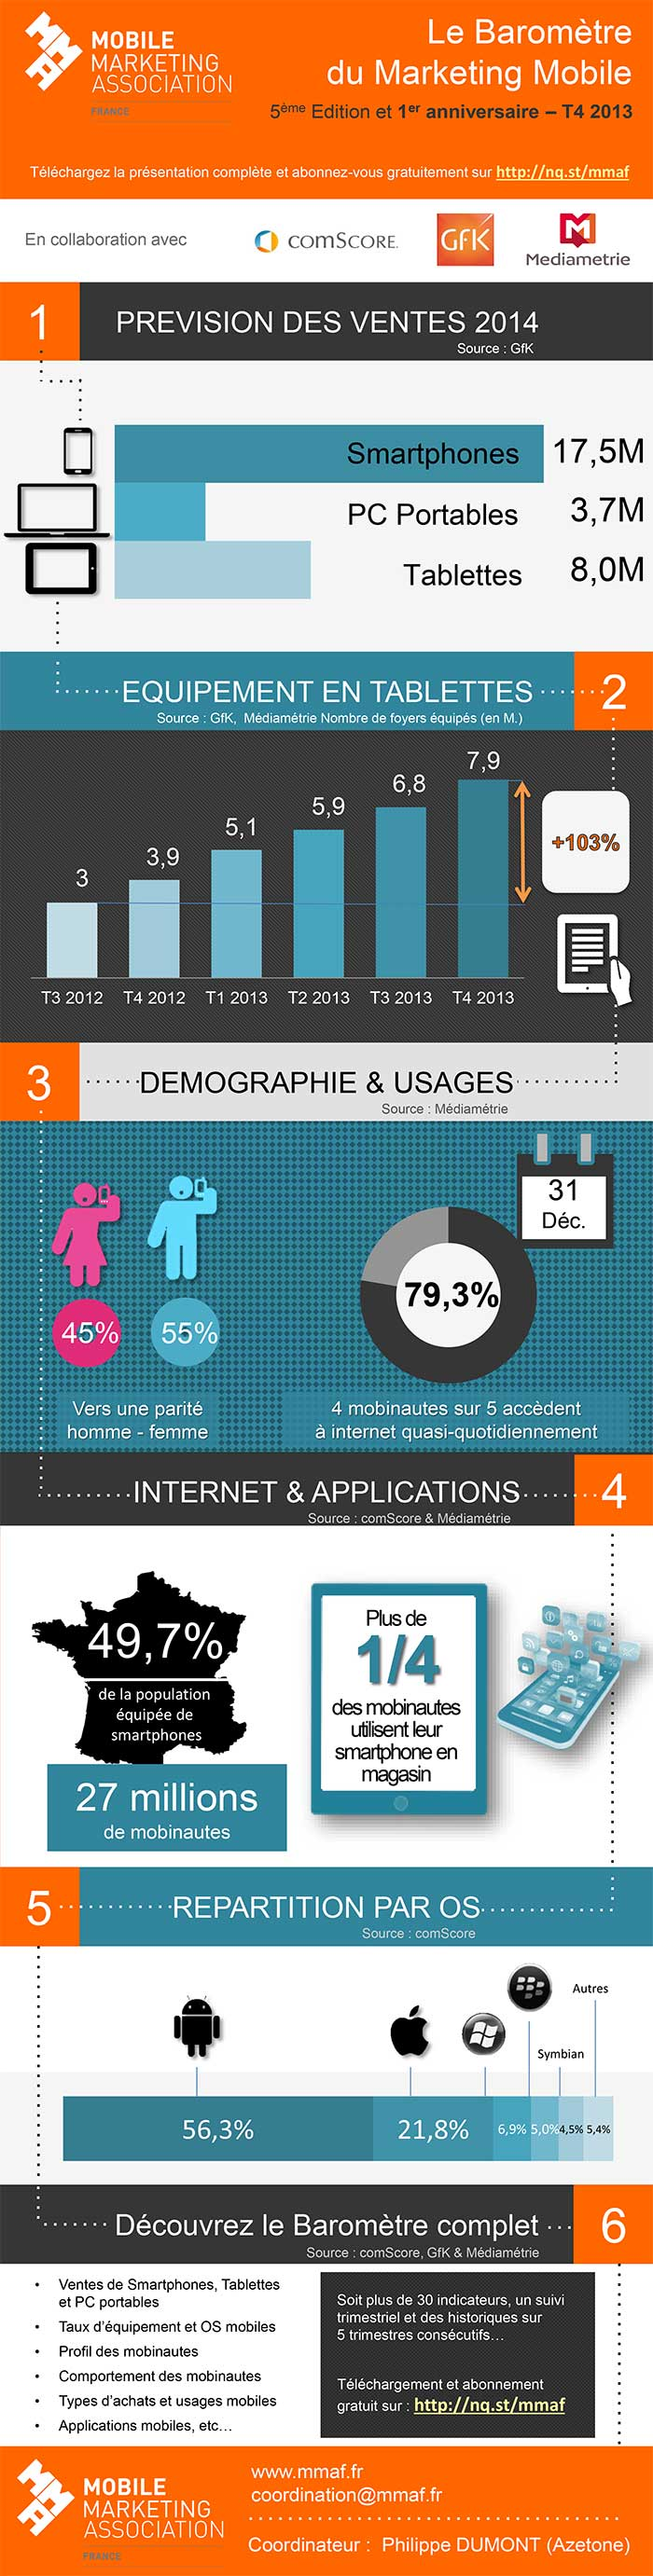 Le-Barometre-du-Marketing-Mobile-de-la-MMAF-2013T4 - Mobinaute